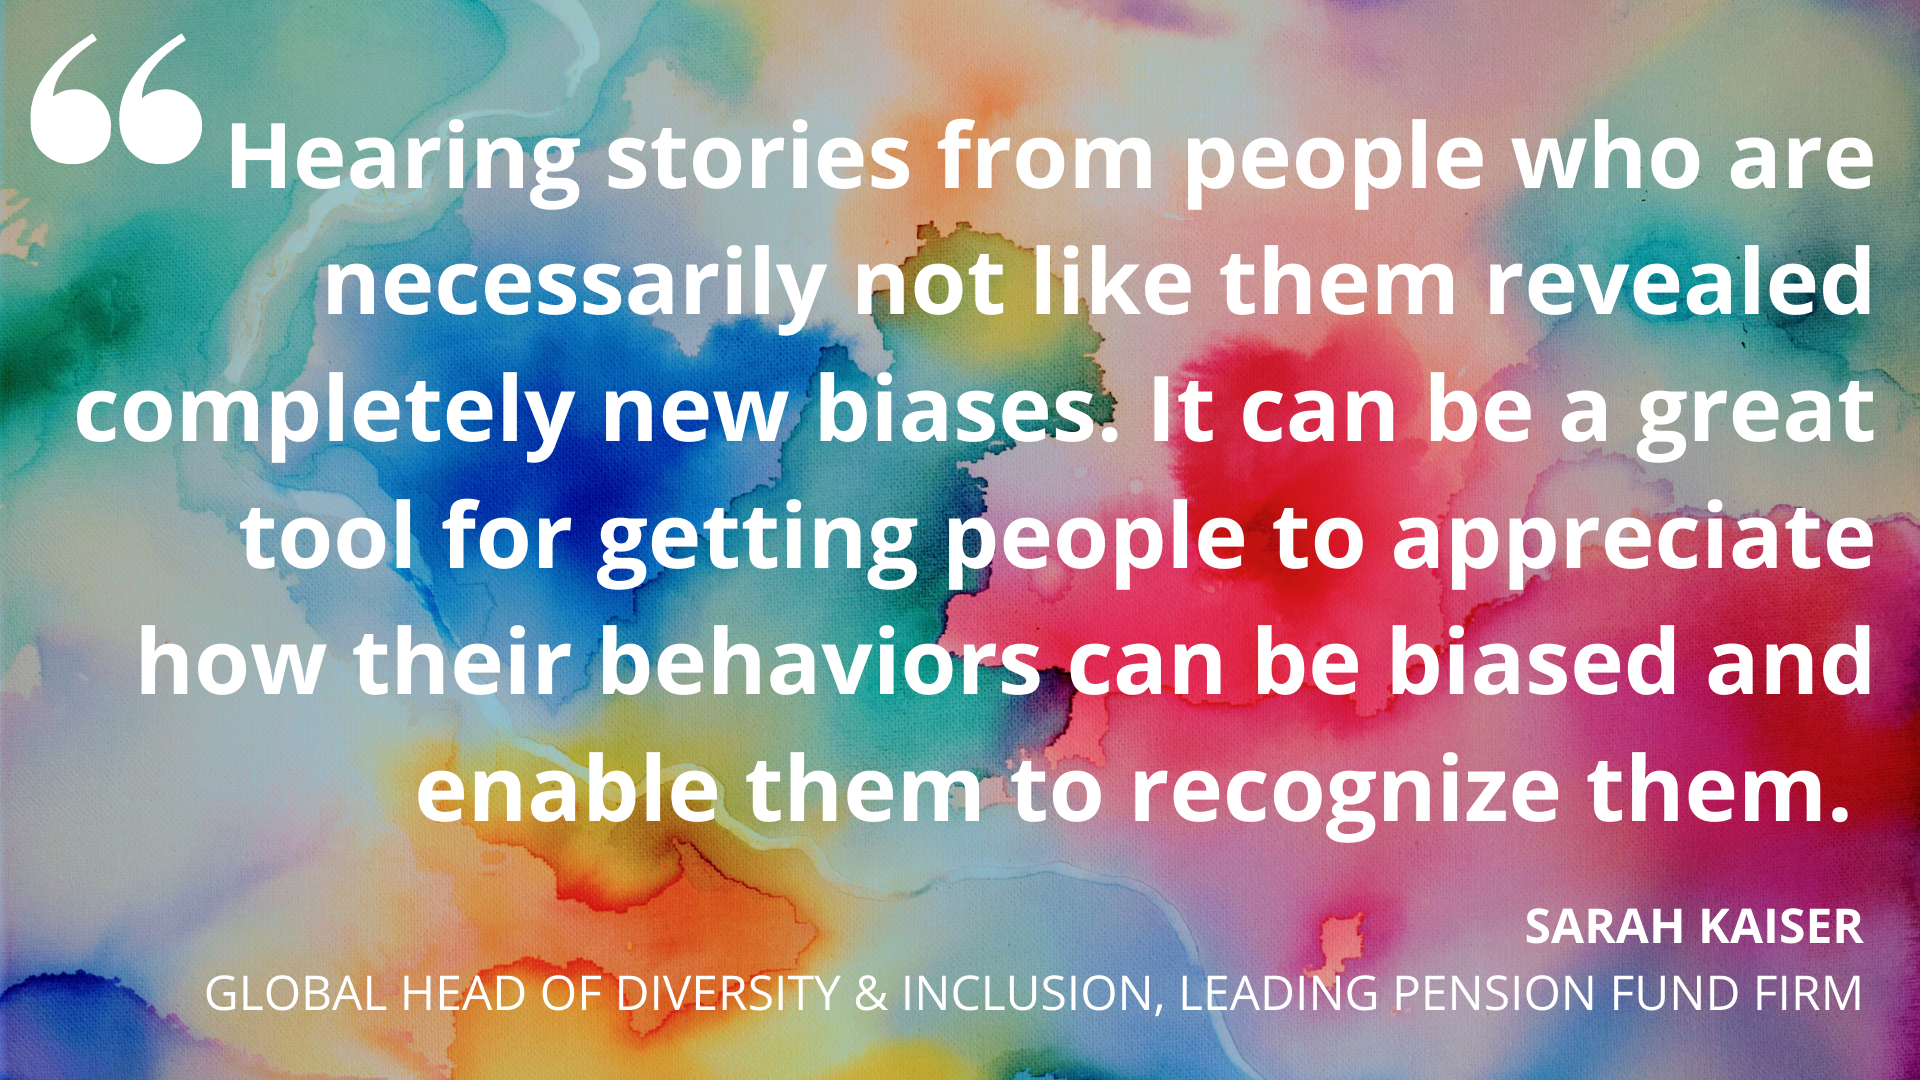 'Hearing stories from people who are necessarily not like them revealed completely new biases. It can be a great tool for getting people to appreciate how their behaviors can be biased and enable them to recognize them.' Sarah Kaiser, Global Head of Diversity & Inclusion, Leading Pension Fund Firm